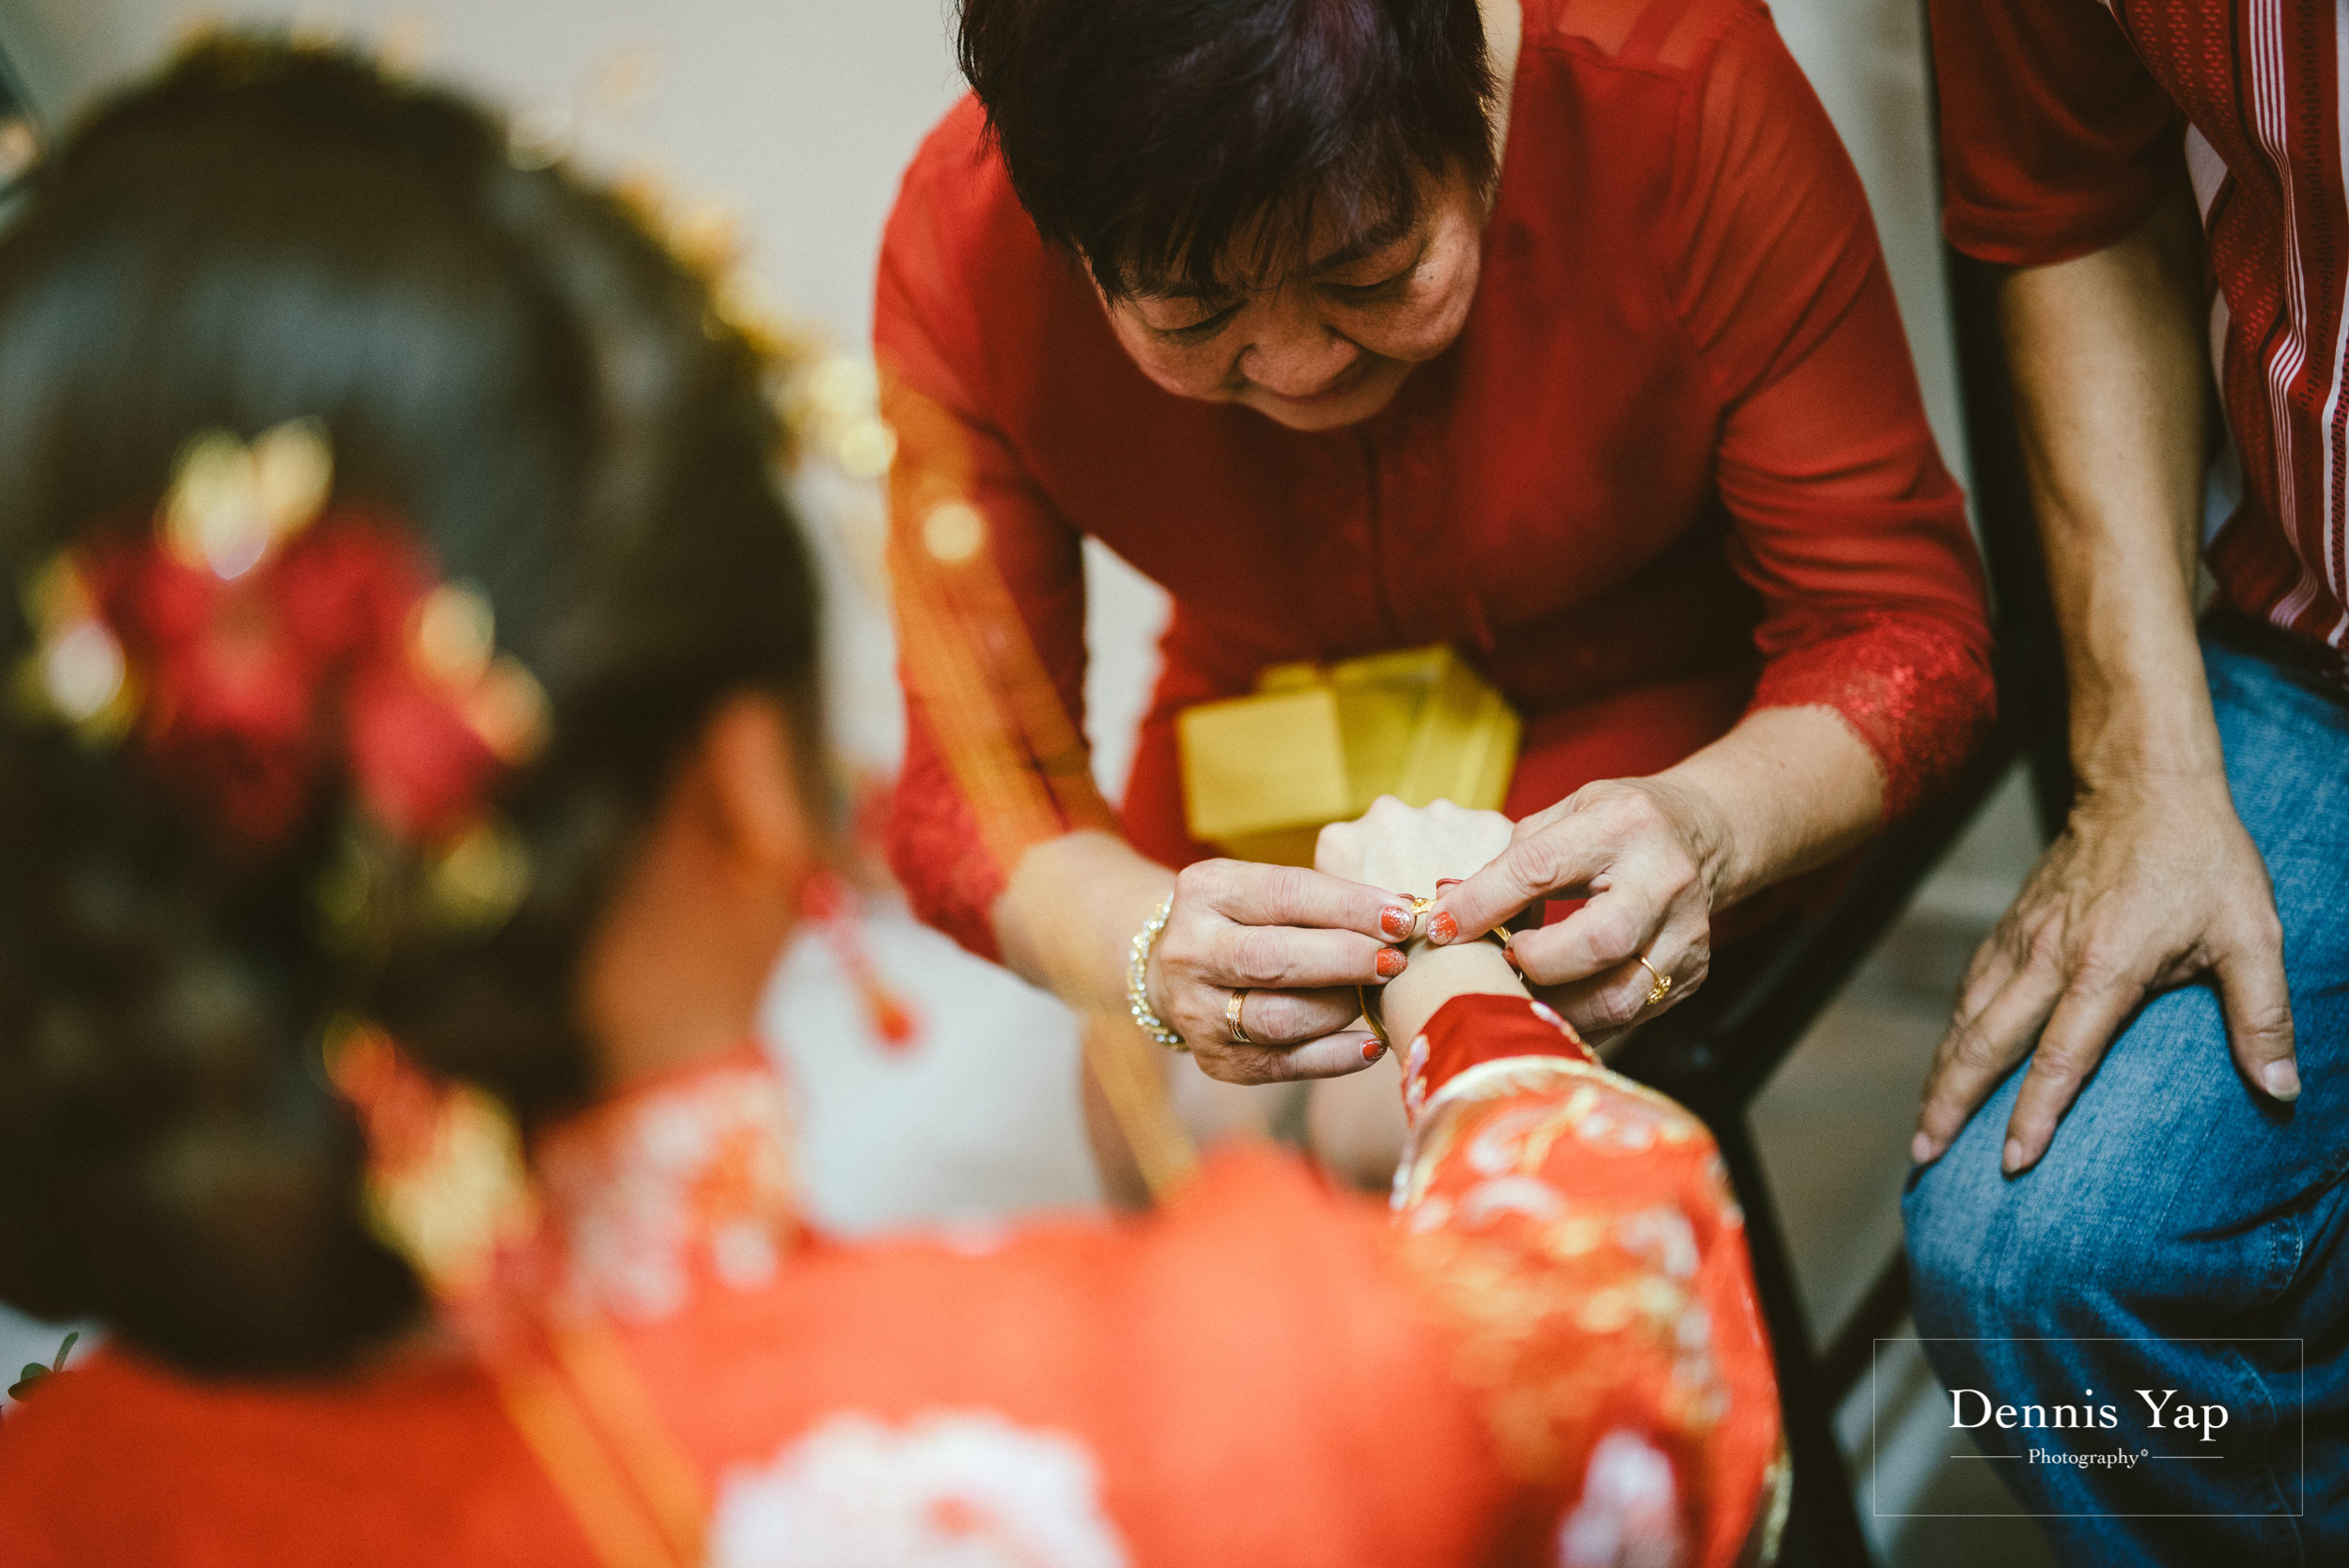 jimmy mellissa wedding day traditional chinese kua dennis yap photography-19.jpg